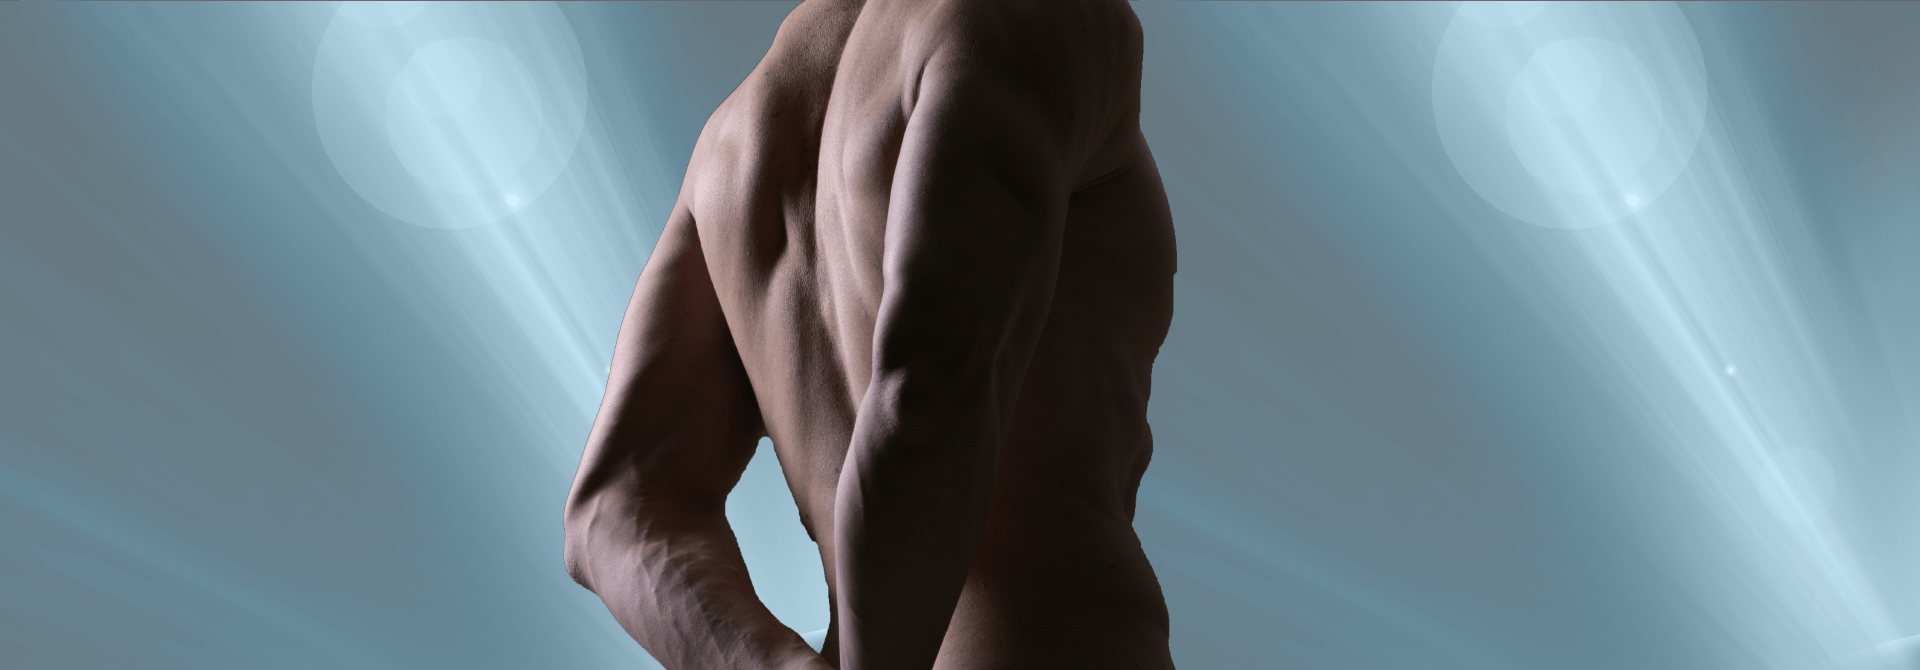 image of a mans back with arms crossed behind